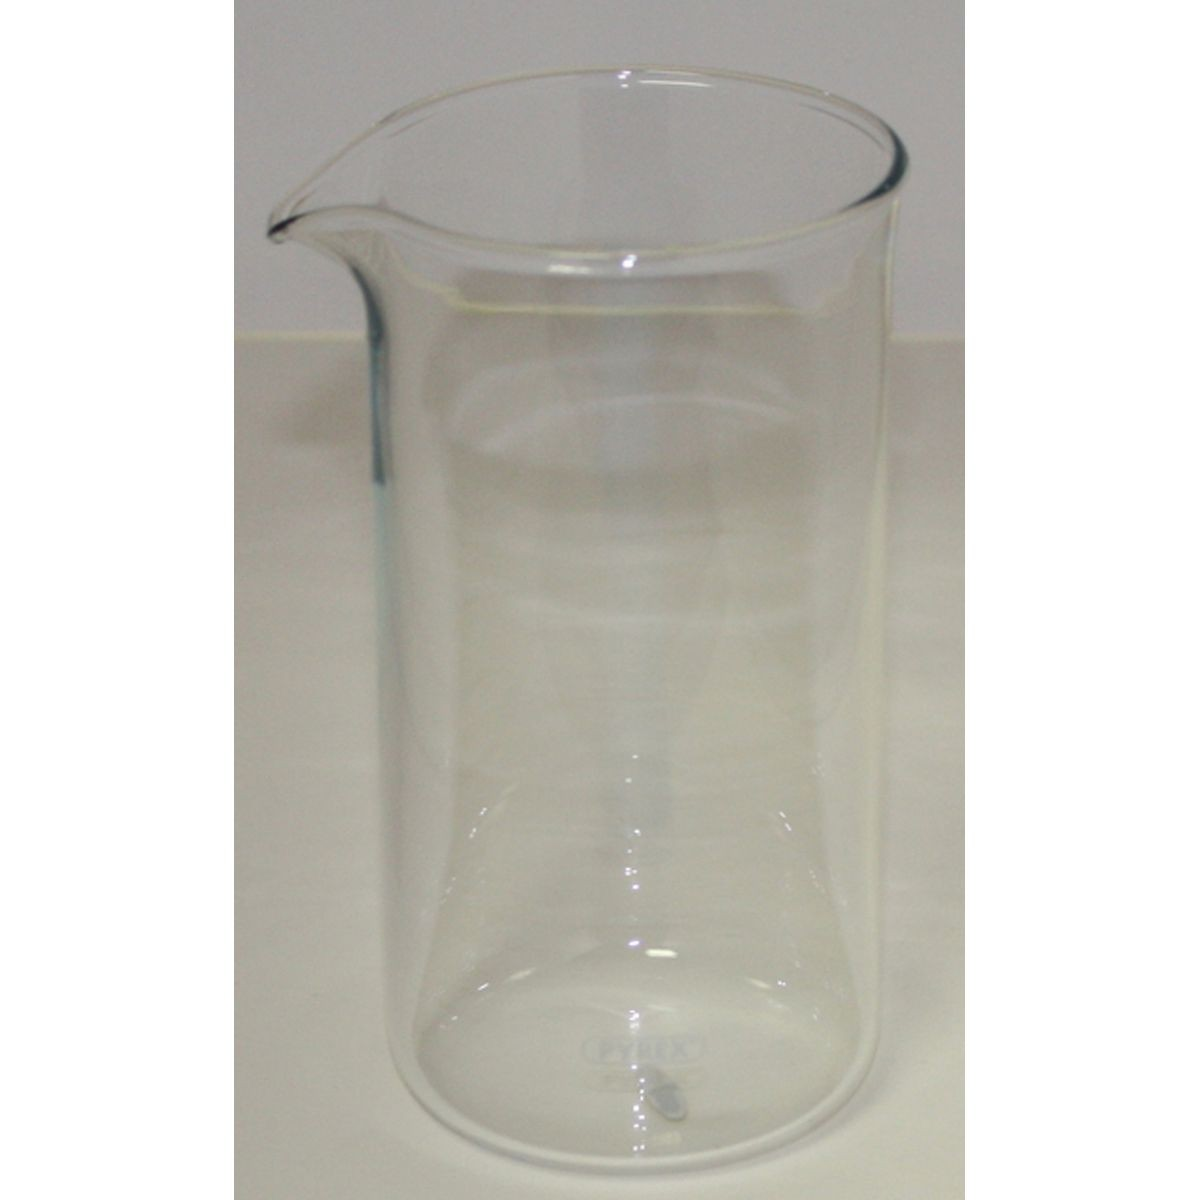 Service Ideas L4 Replacement Glass Liner for 4-Cup Classic Coffee Press